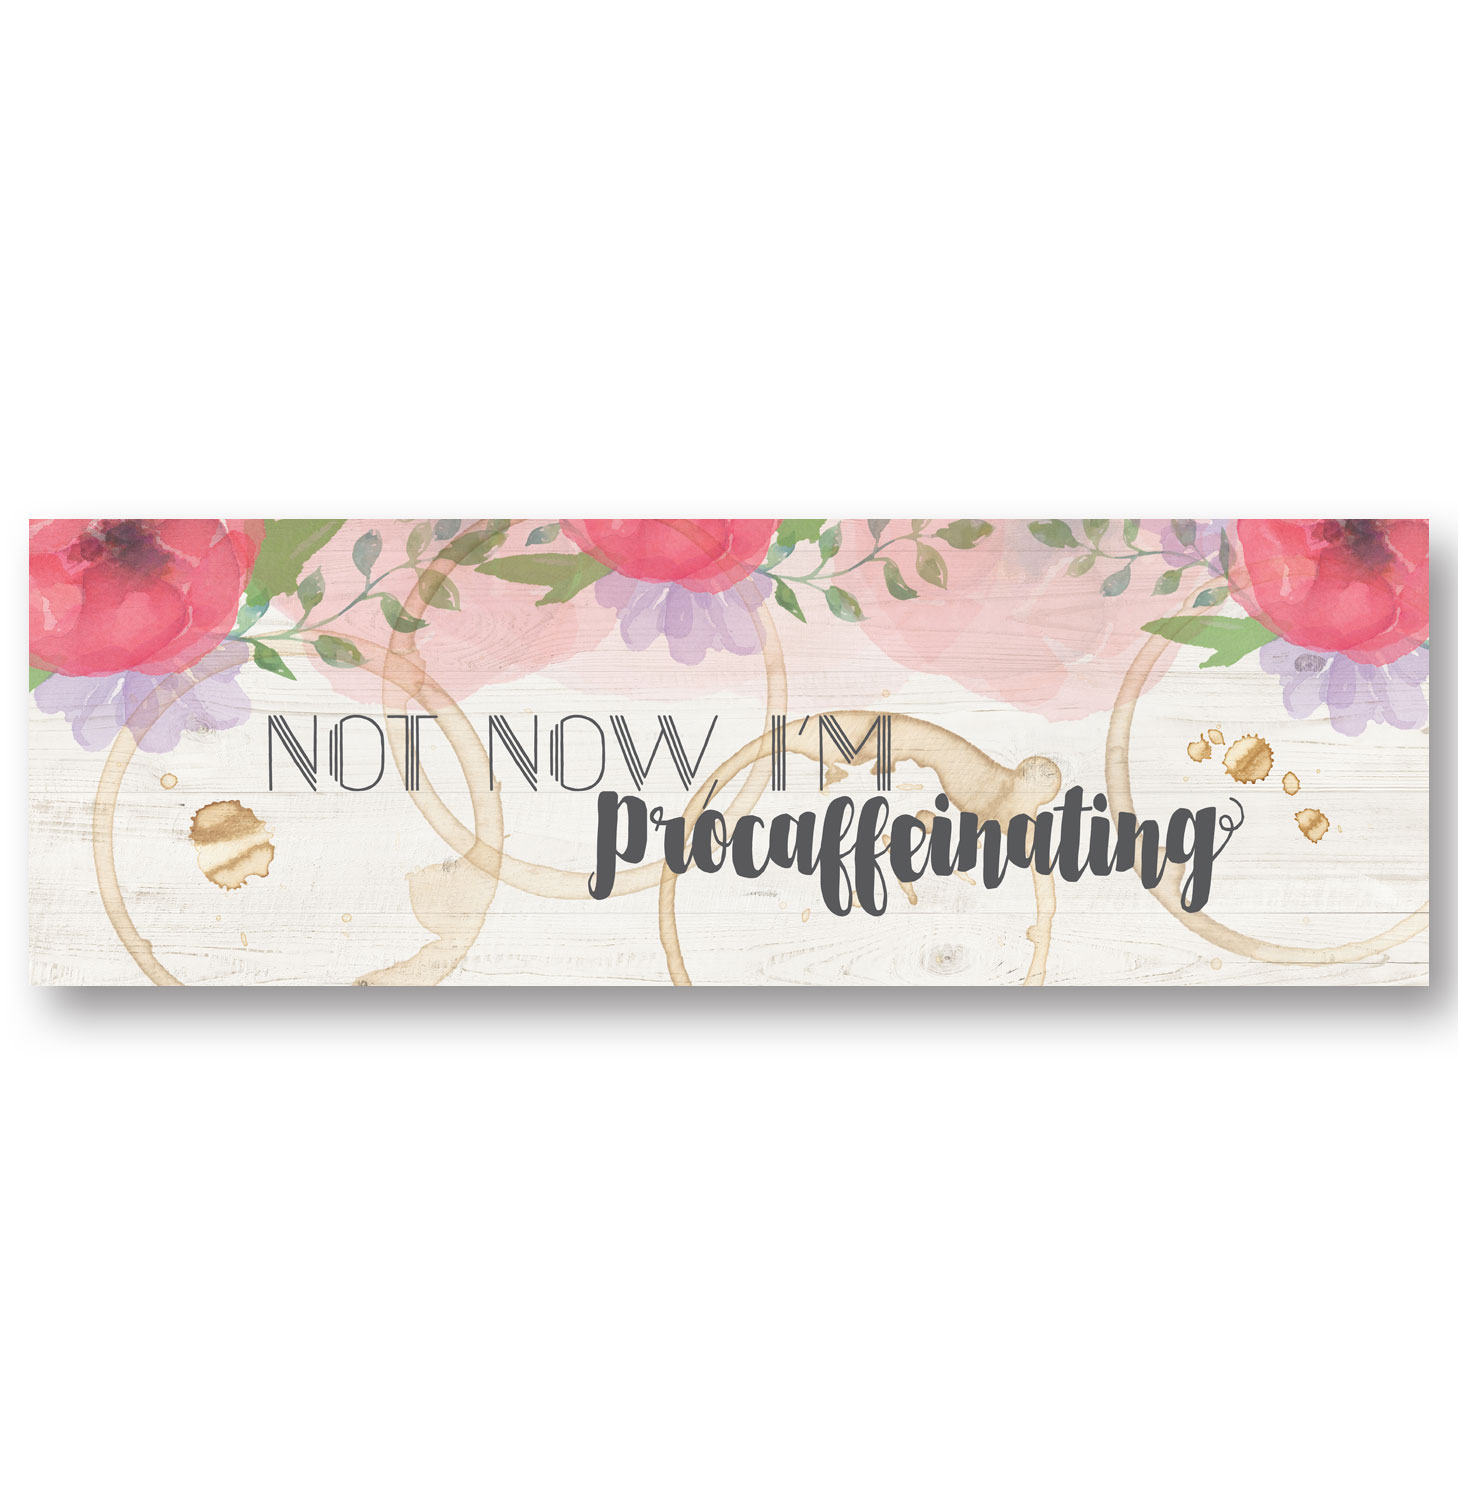 "Lovely, Pink Floral ""Not Now, I'm Procaffinating"" Panel, Perfect For The Coffee Lover; One 18x6in Unframed Paper Poster"